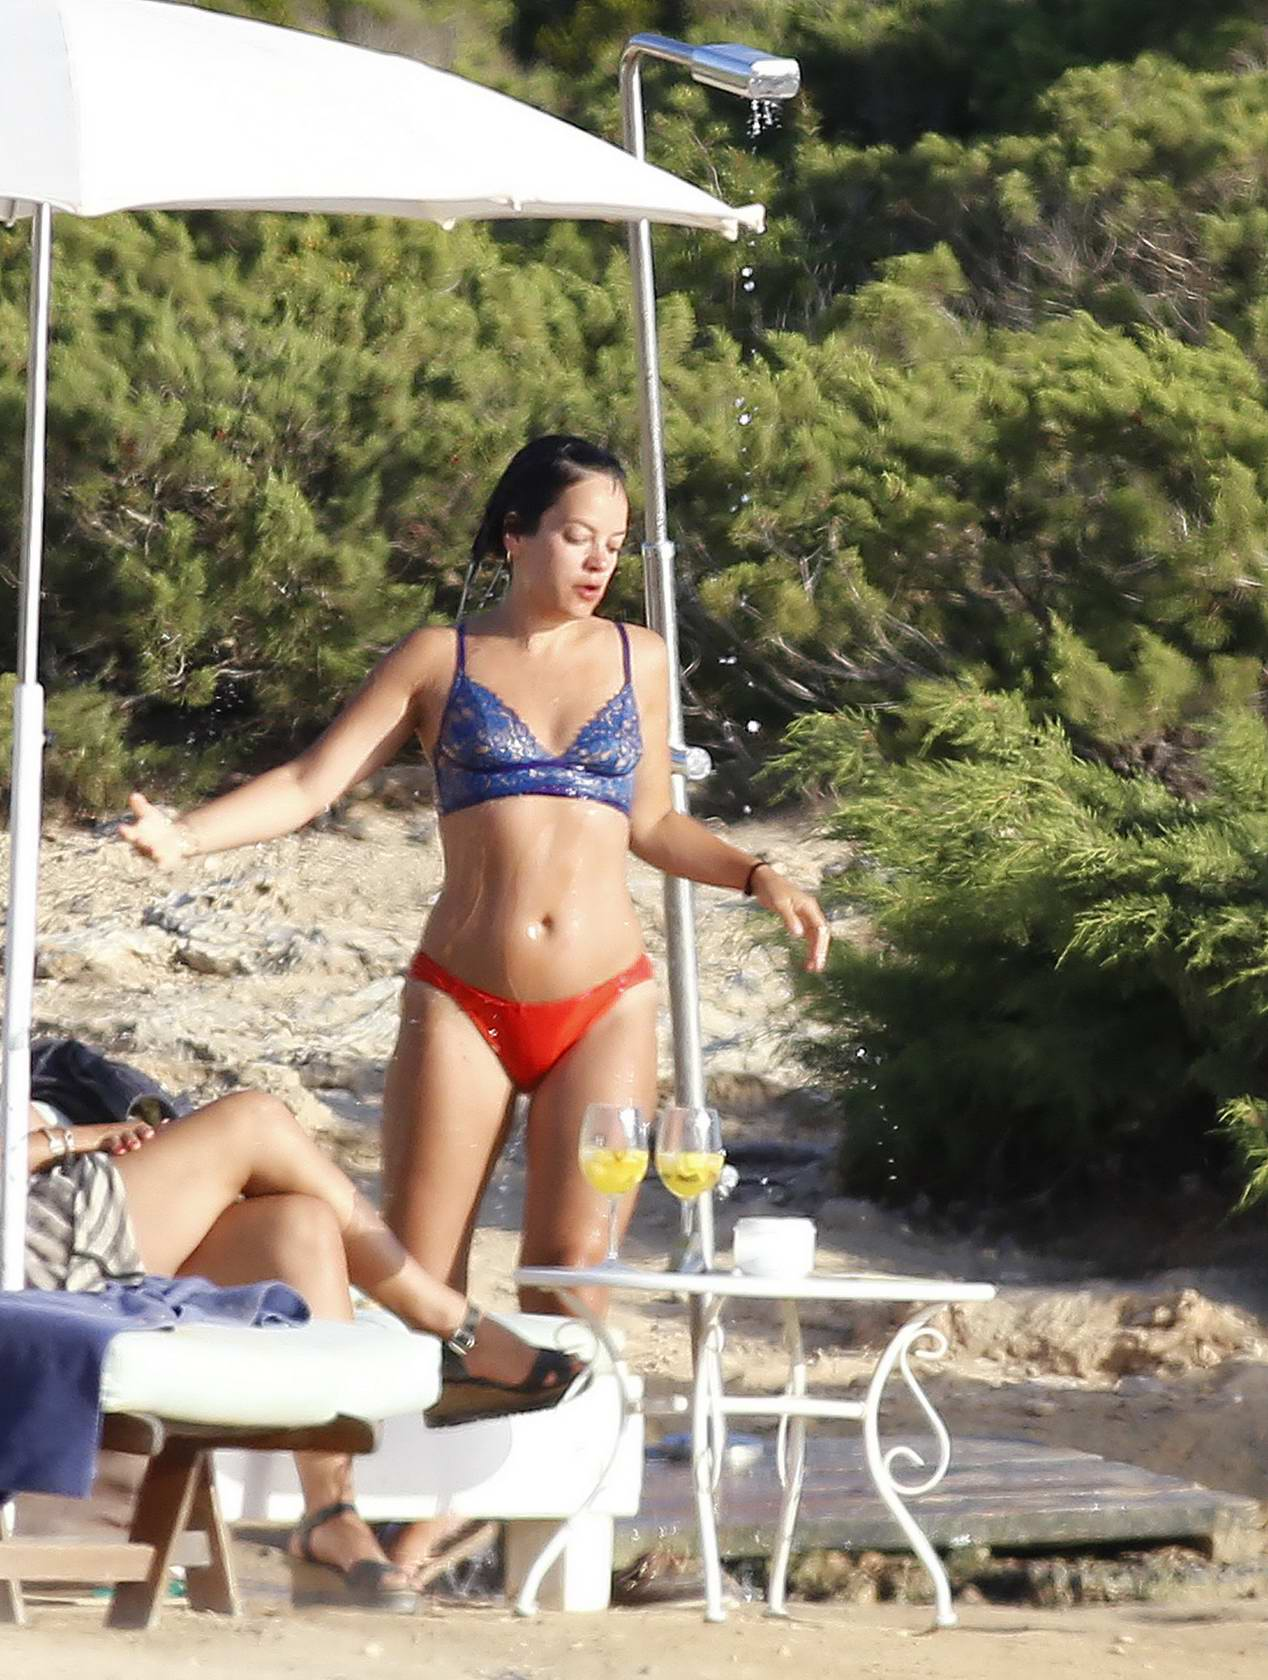 Lily Allen in a red and blue bikini holidaying in Ibiza, Spain